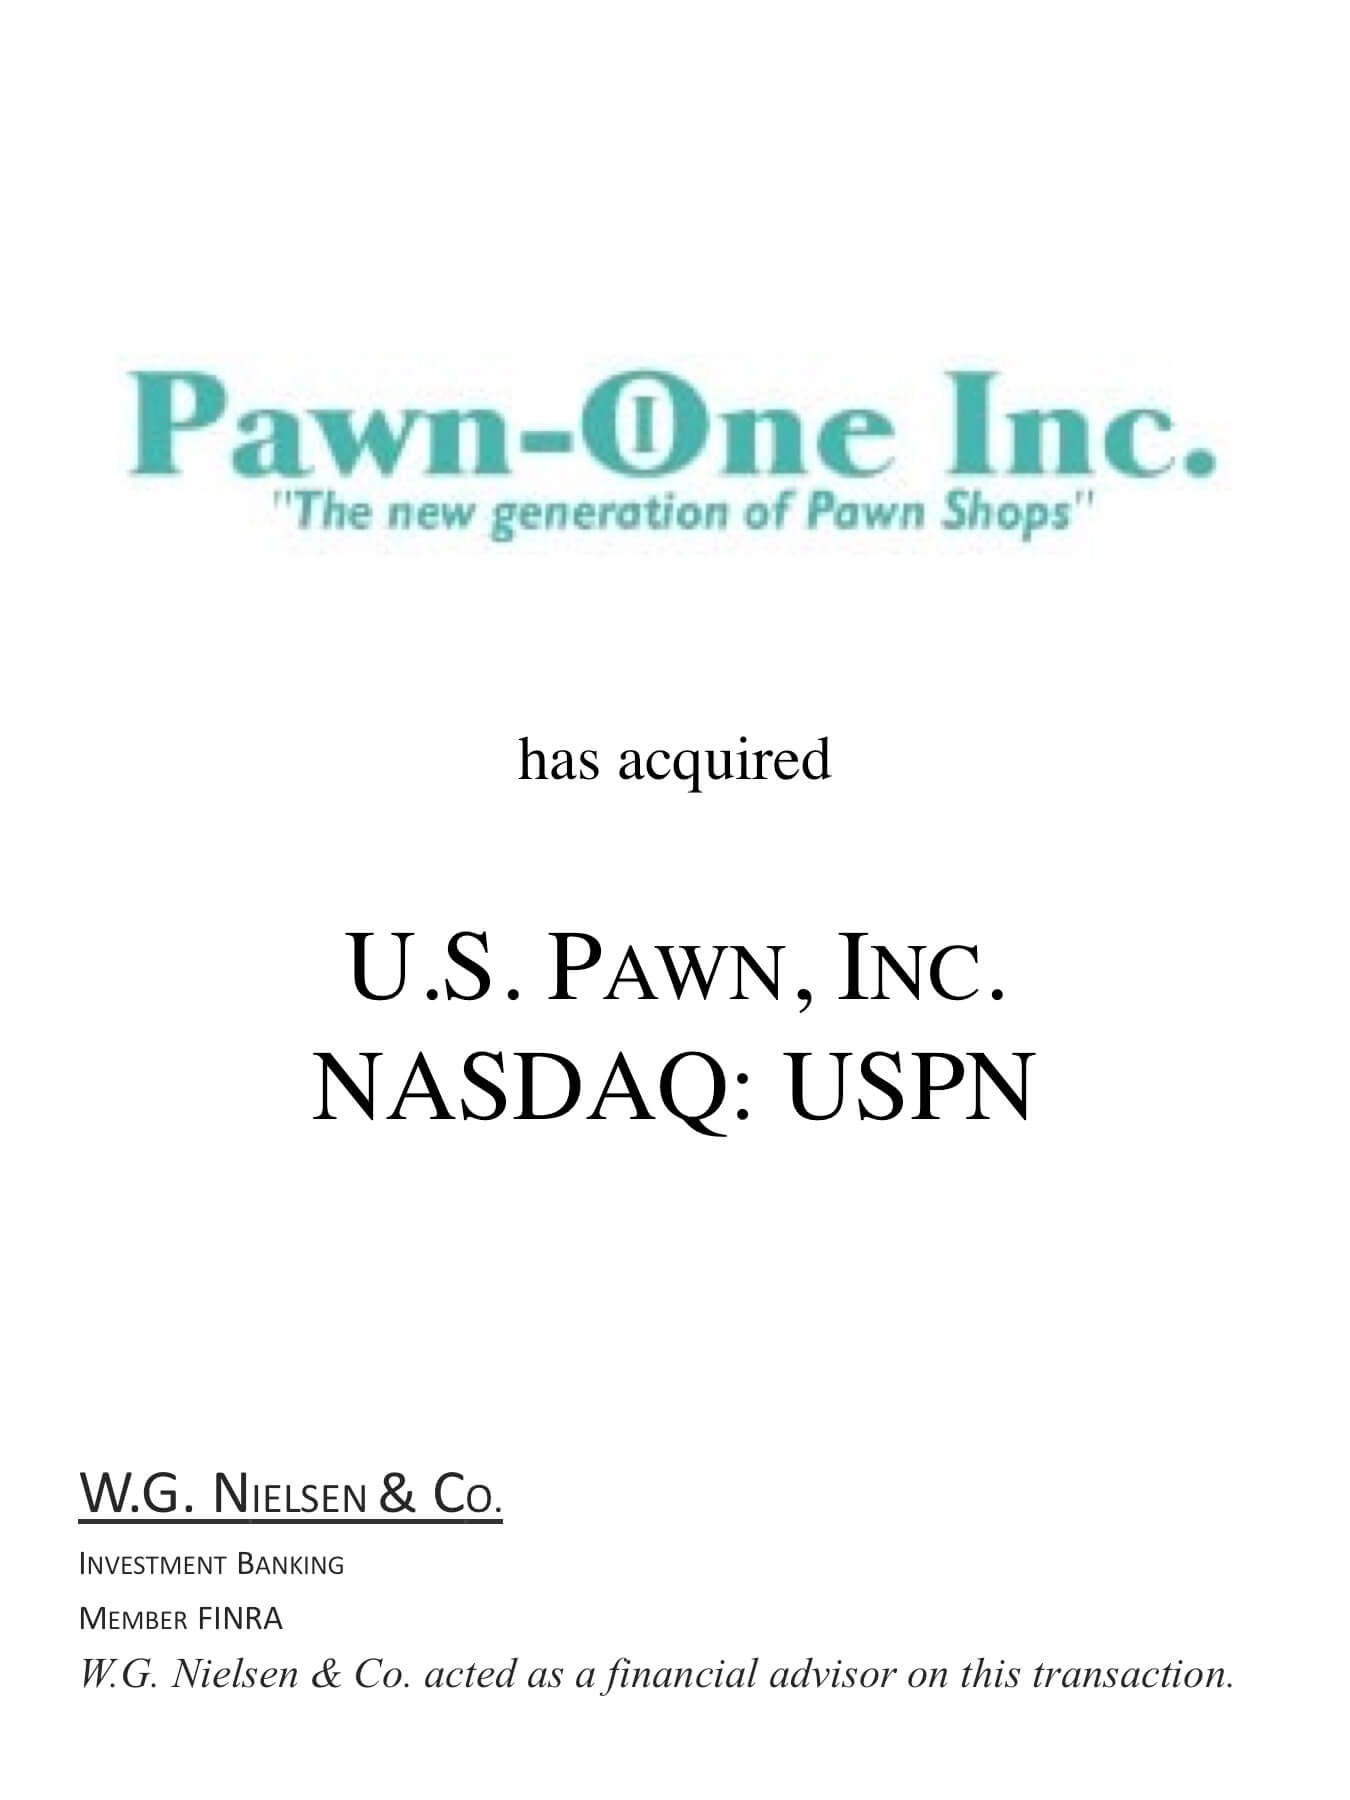 pawn-one investment banking transaction